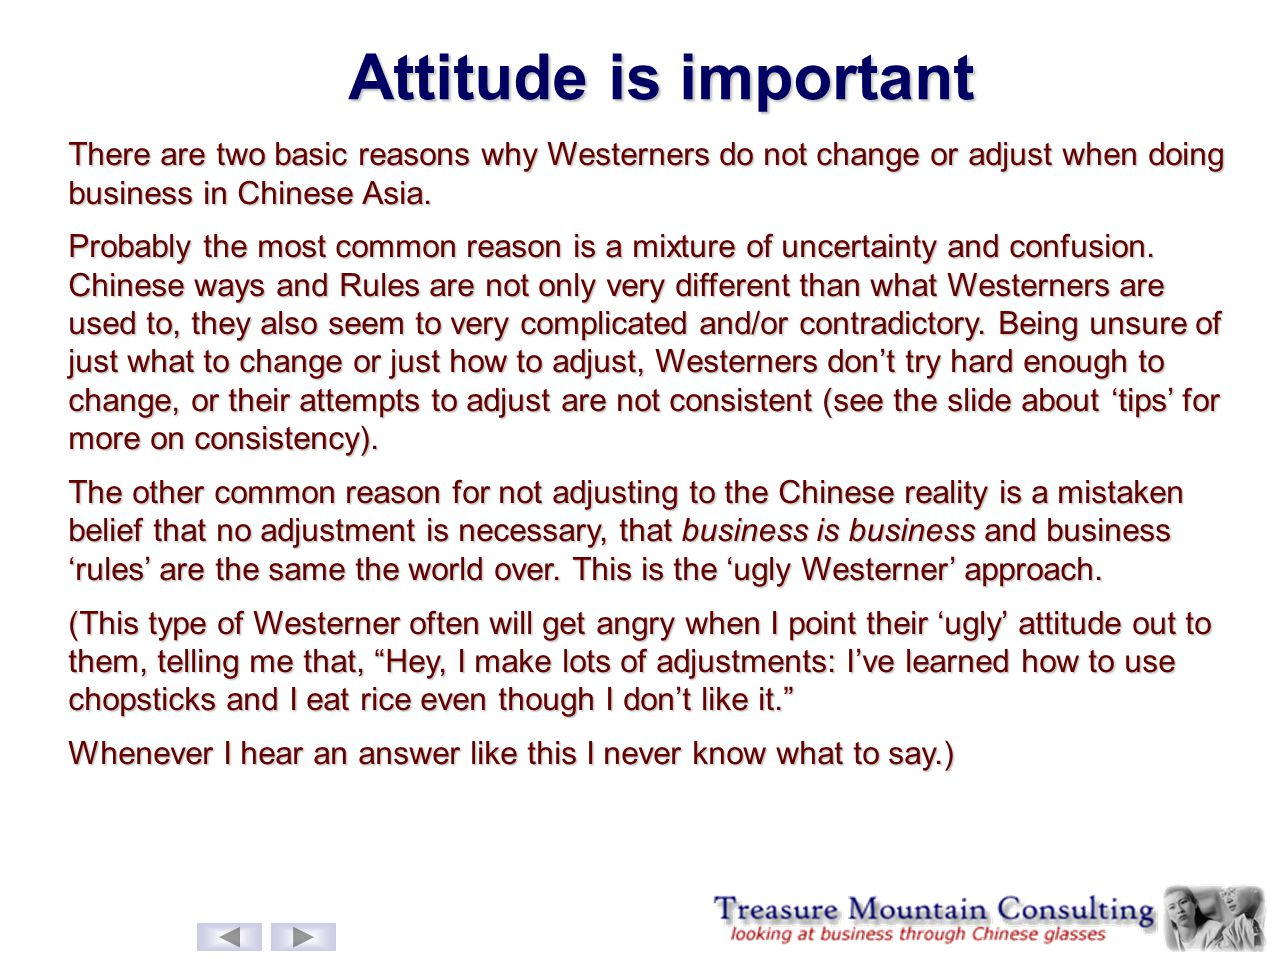 Attitude is important There are two basic reasons why Westerners do not change or adjust when doing business in Chinese Asia. Probably the most common